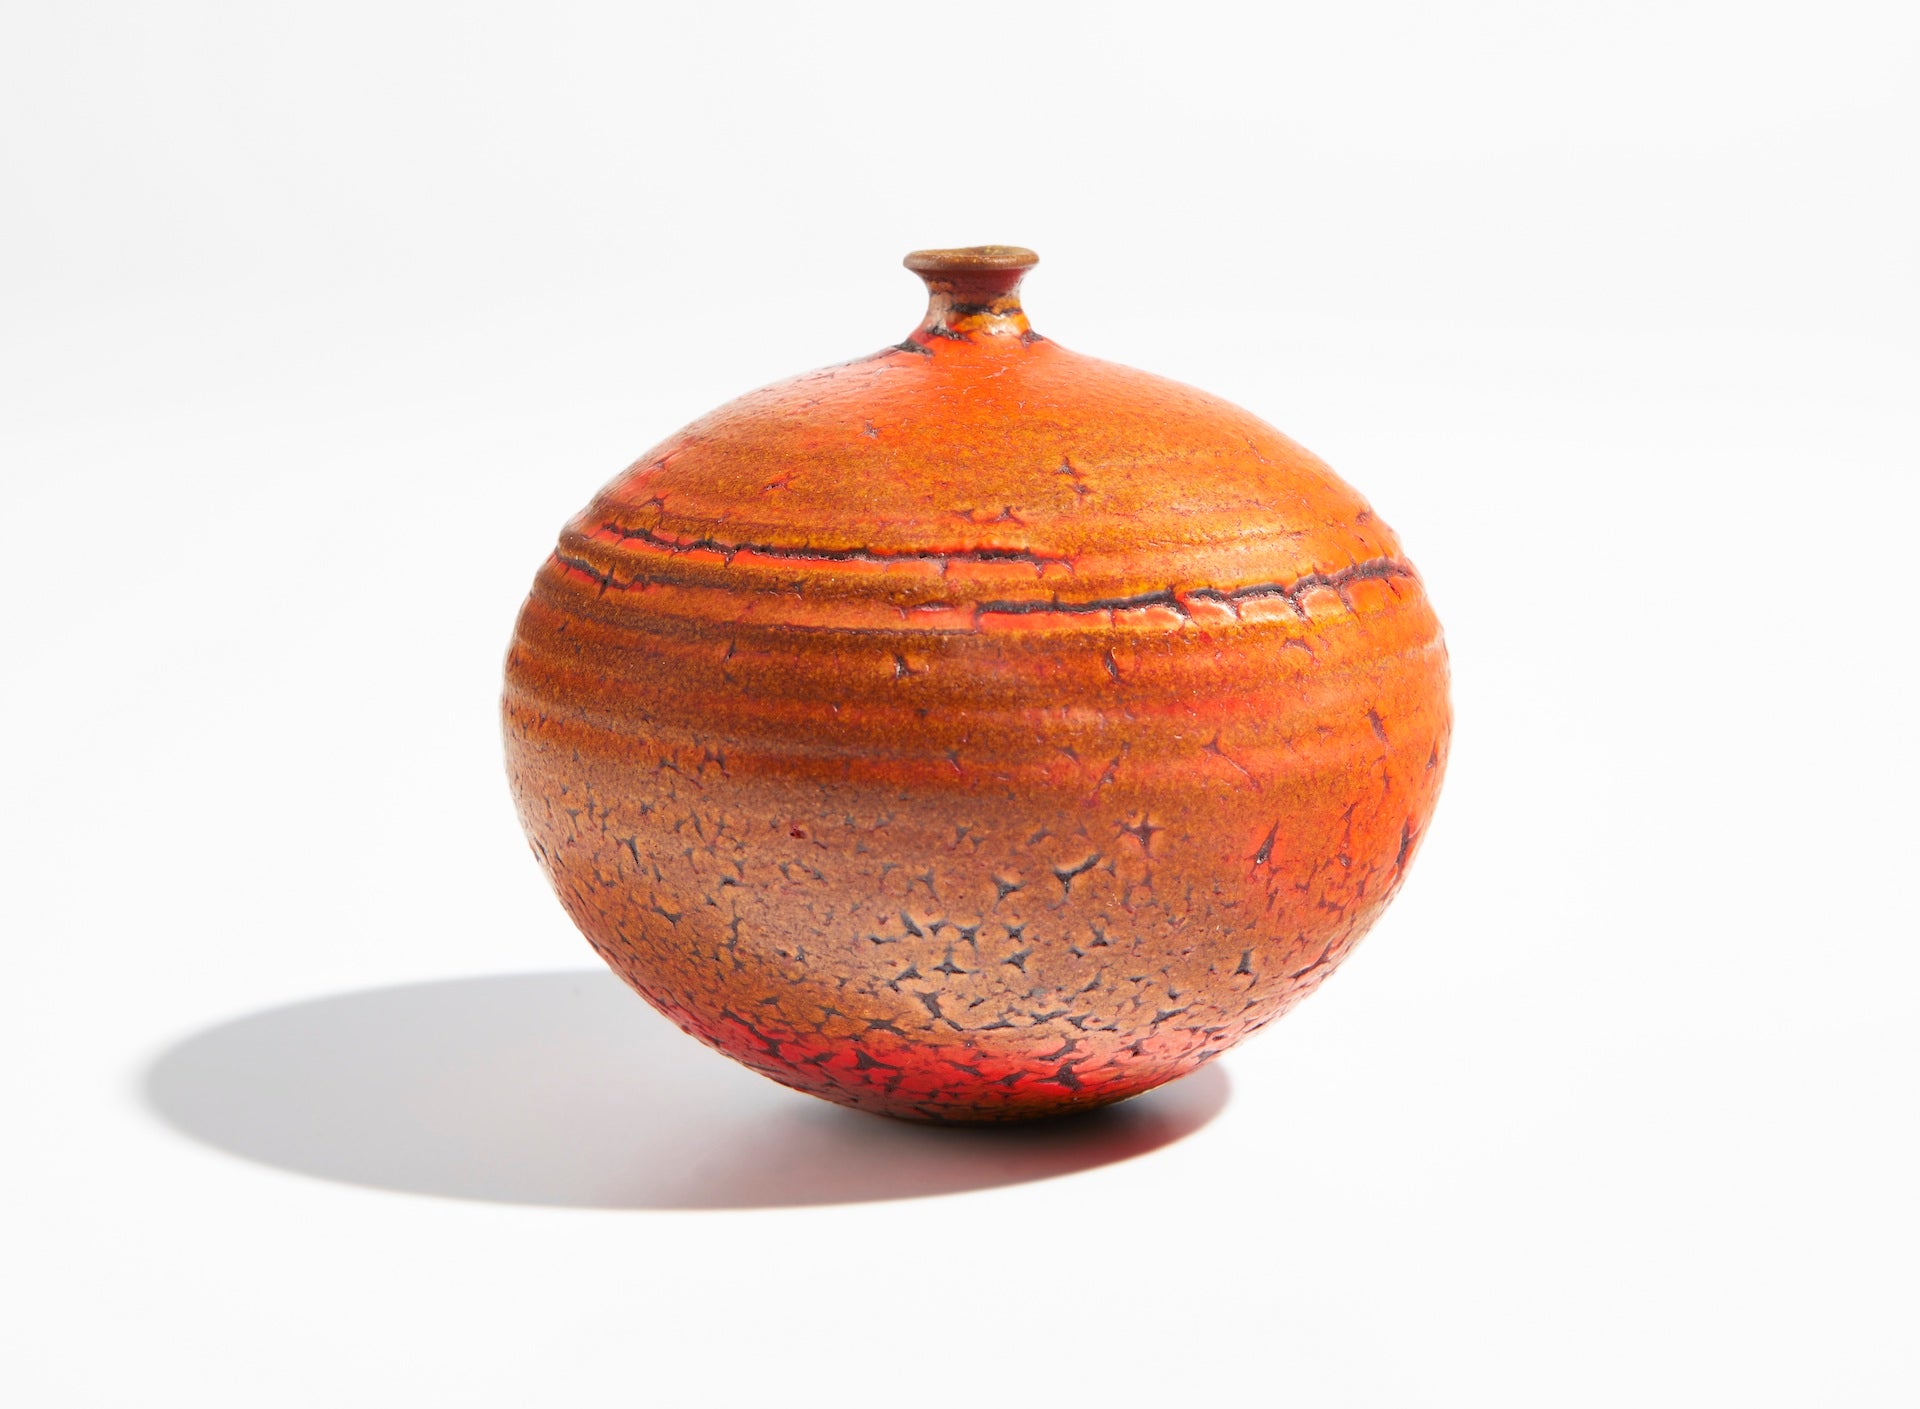 Phillips New York 9 June 2021 - Design [lot 60]: Weed Pot by Doyle Lane, c. 1960. Estimate: $6,000 - $8,000. Sold: $22,680. Photo © Phillips